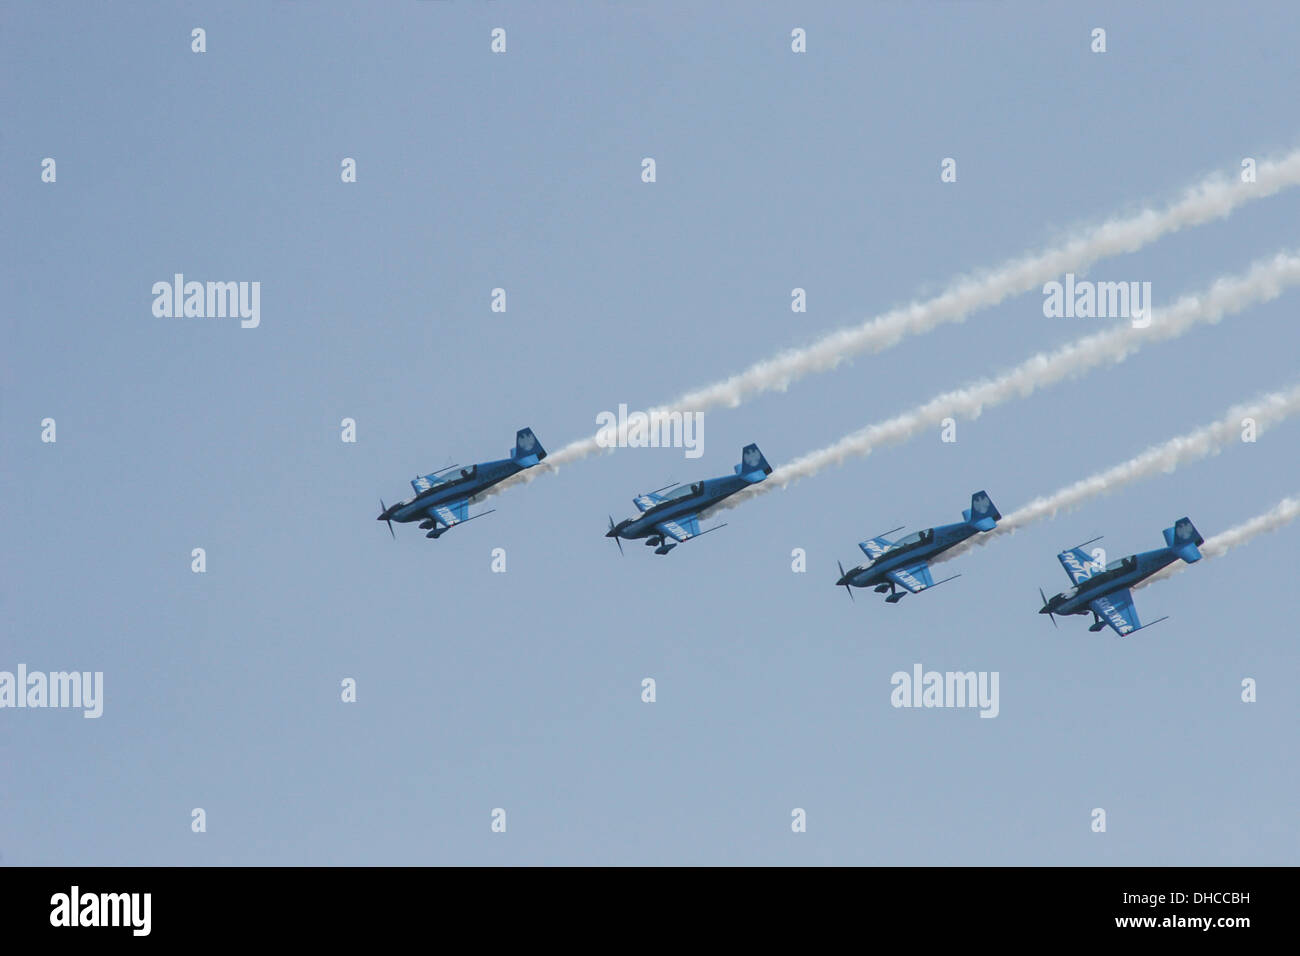 'The Blades' at Bournemouth Air Festival 2008. - Stock Image